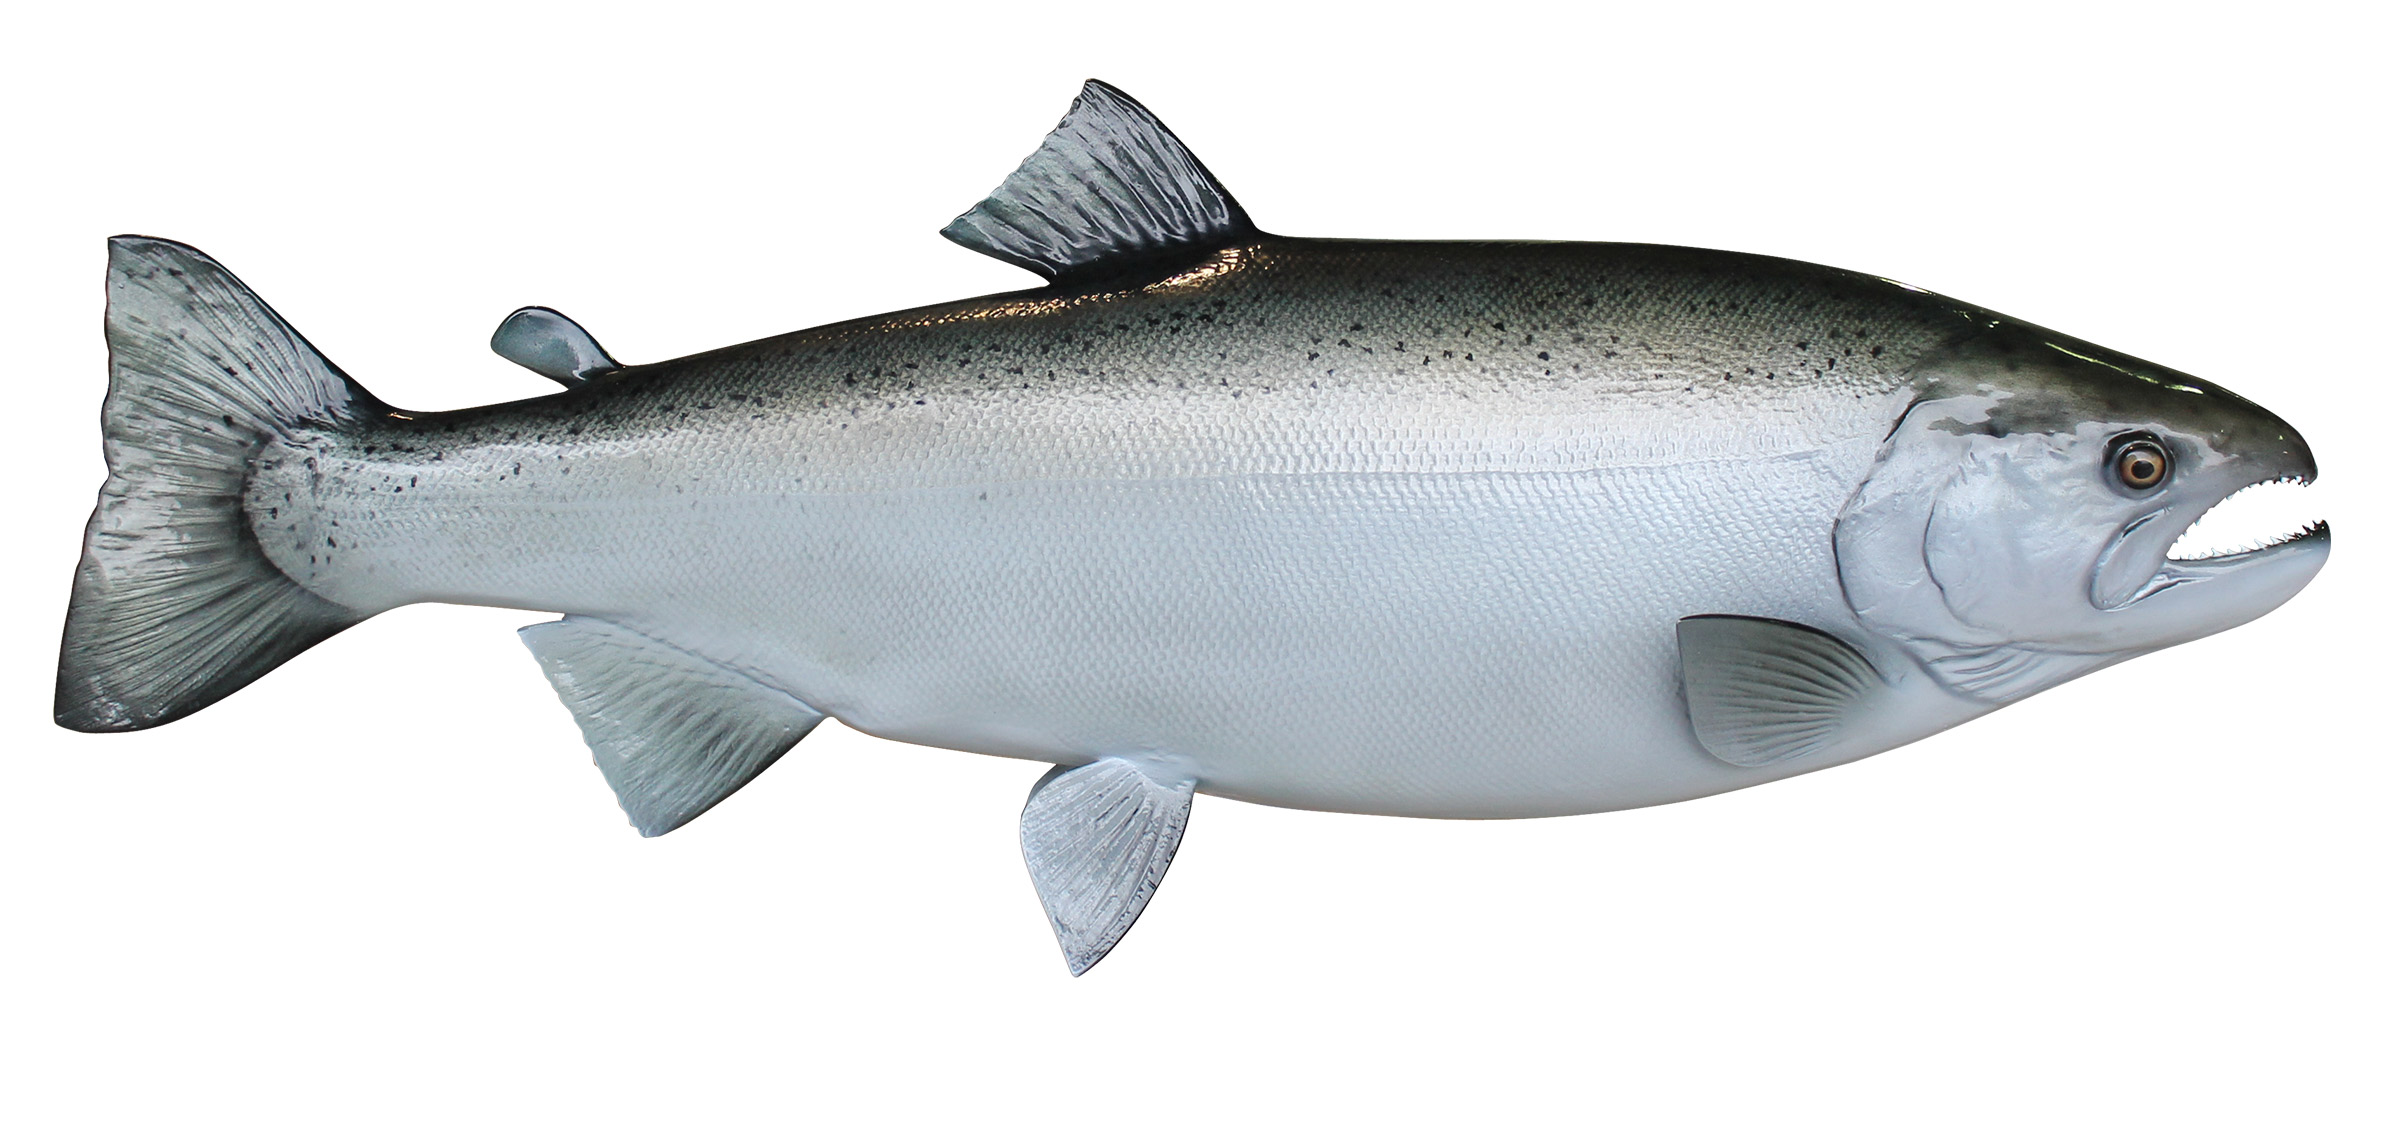 Image gallery silver salmon for Salmon fish images